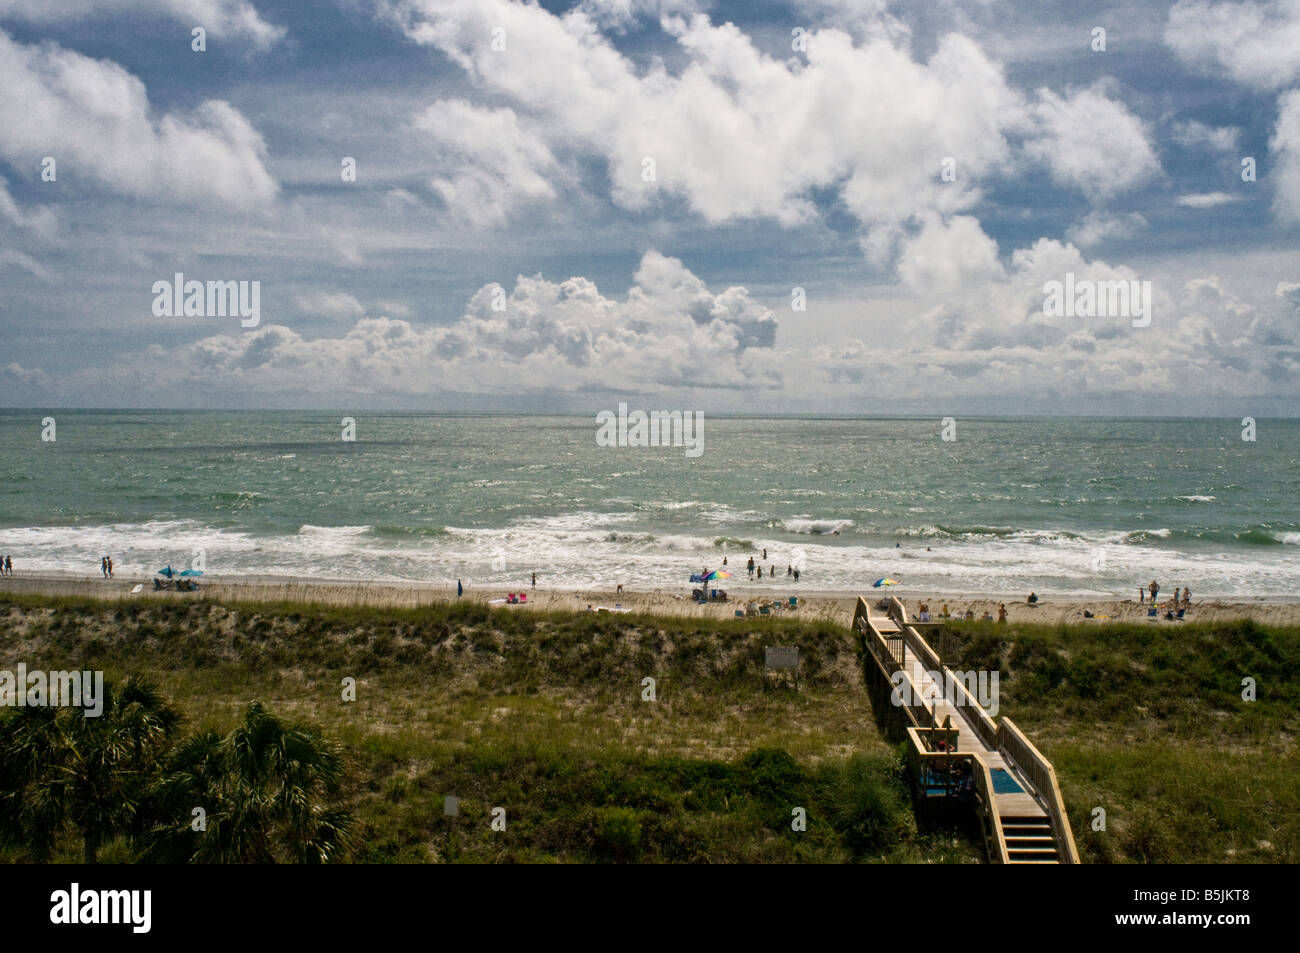 Pawleys island South Carolina ocean seaside resort - Stock Image